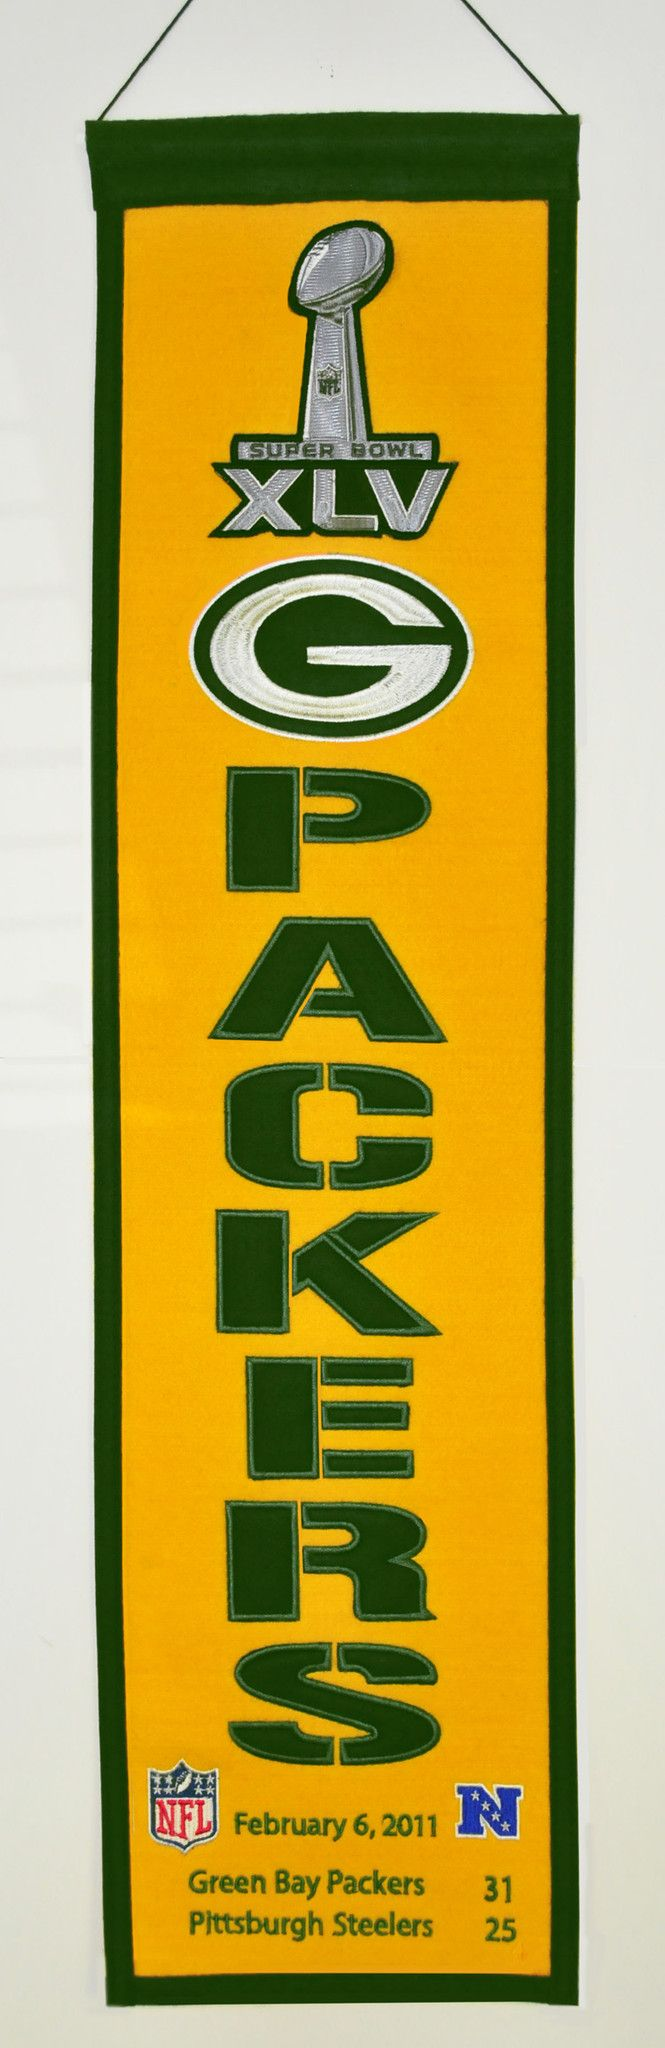 This Super Bowl Banner is a high quality embroidered collectible which hangs vertically and is 8 (w) x 32 (h) inches in size. This wall banner is a great way to display your team allegiance and hang i